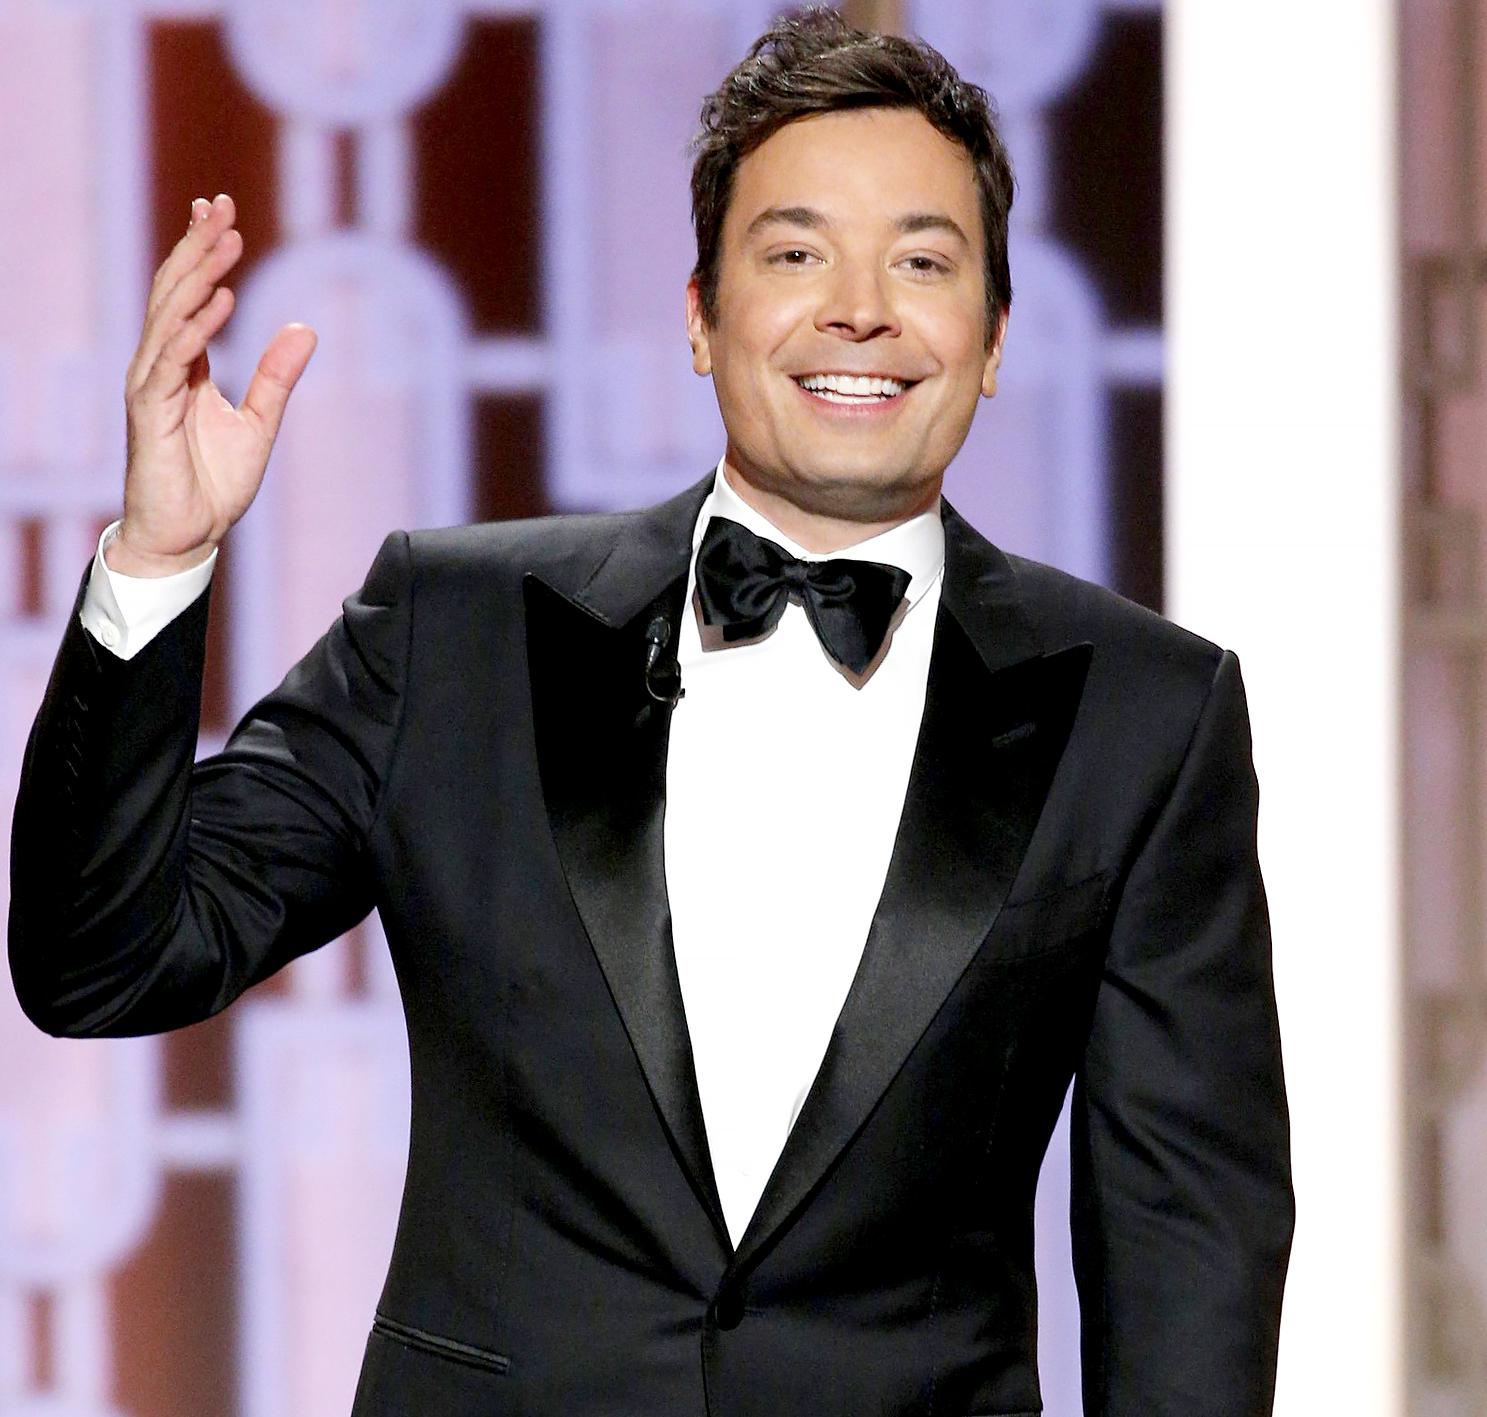 Jimmy Fallon onstage during the 74th Annual Golden Globe Awards.